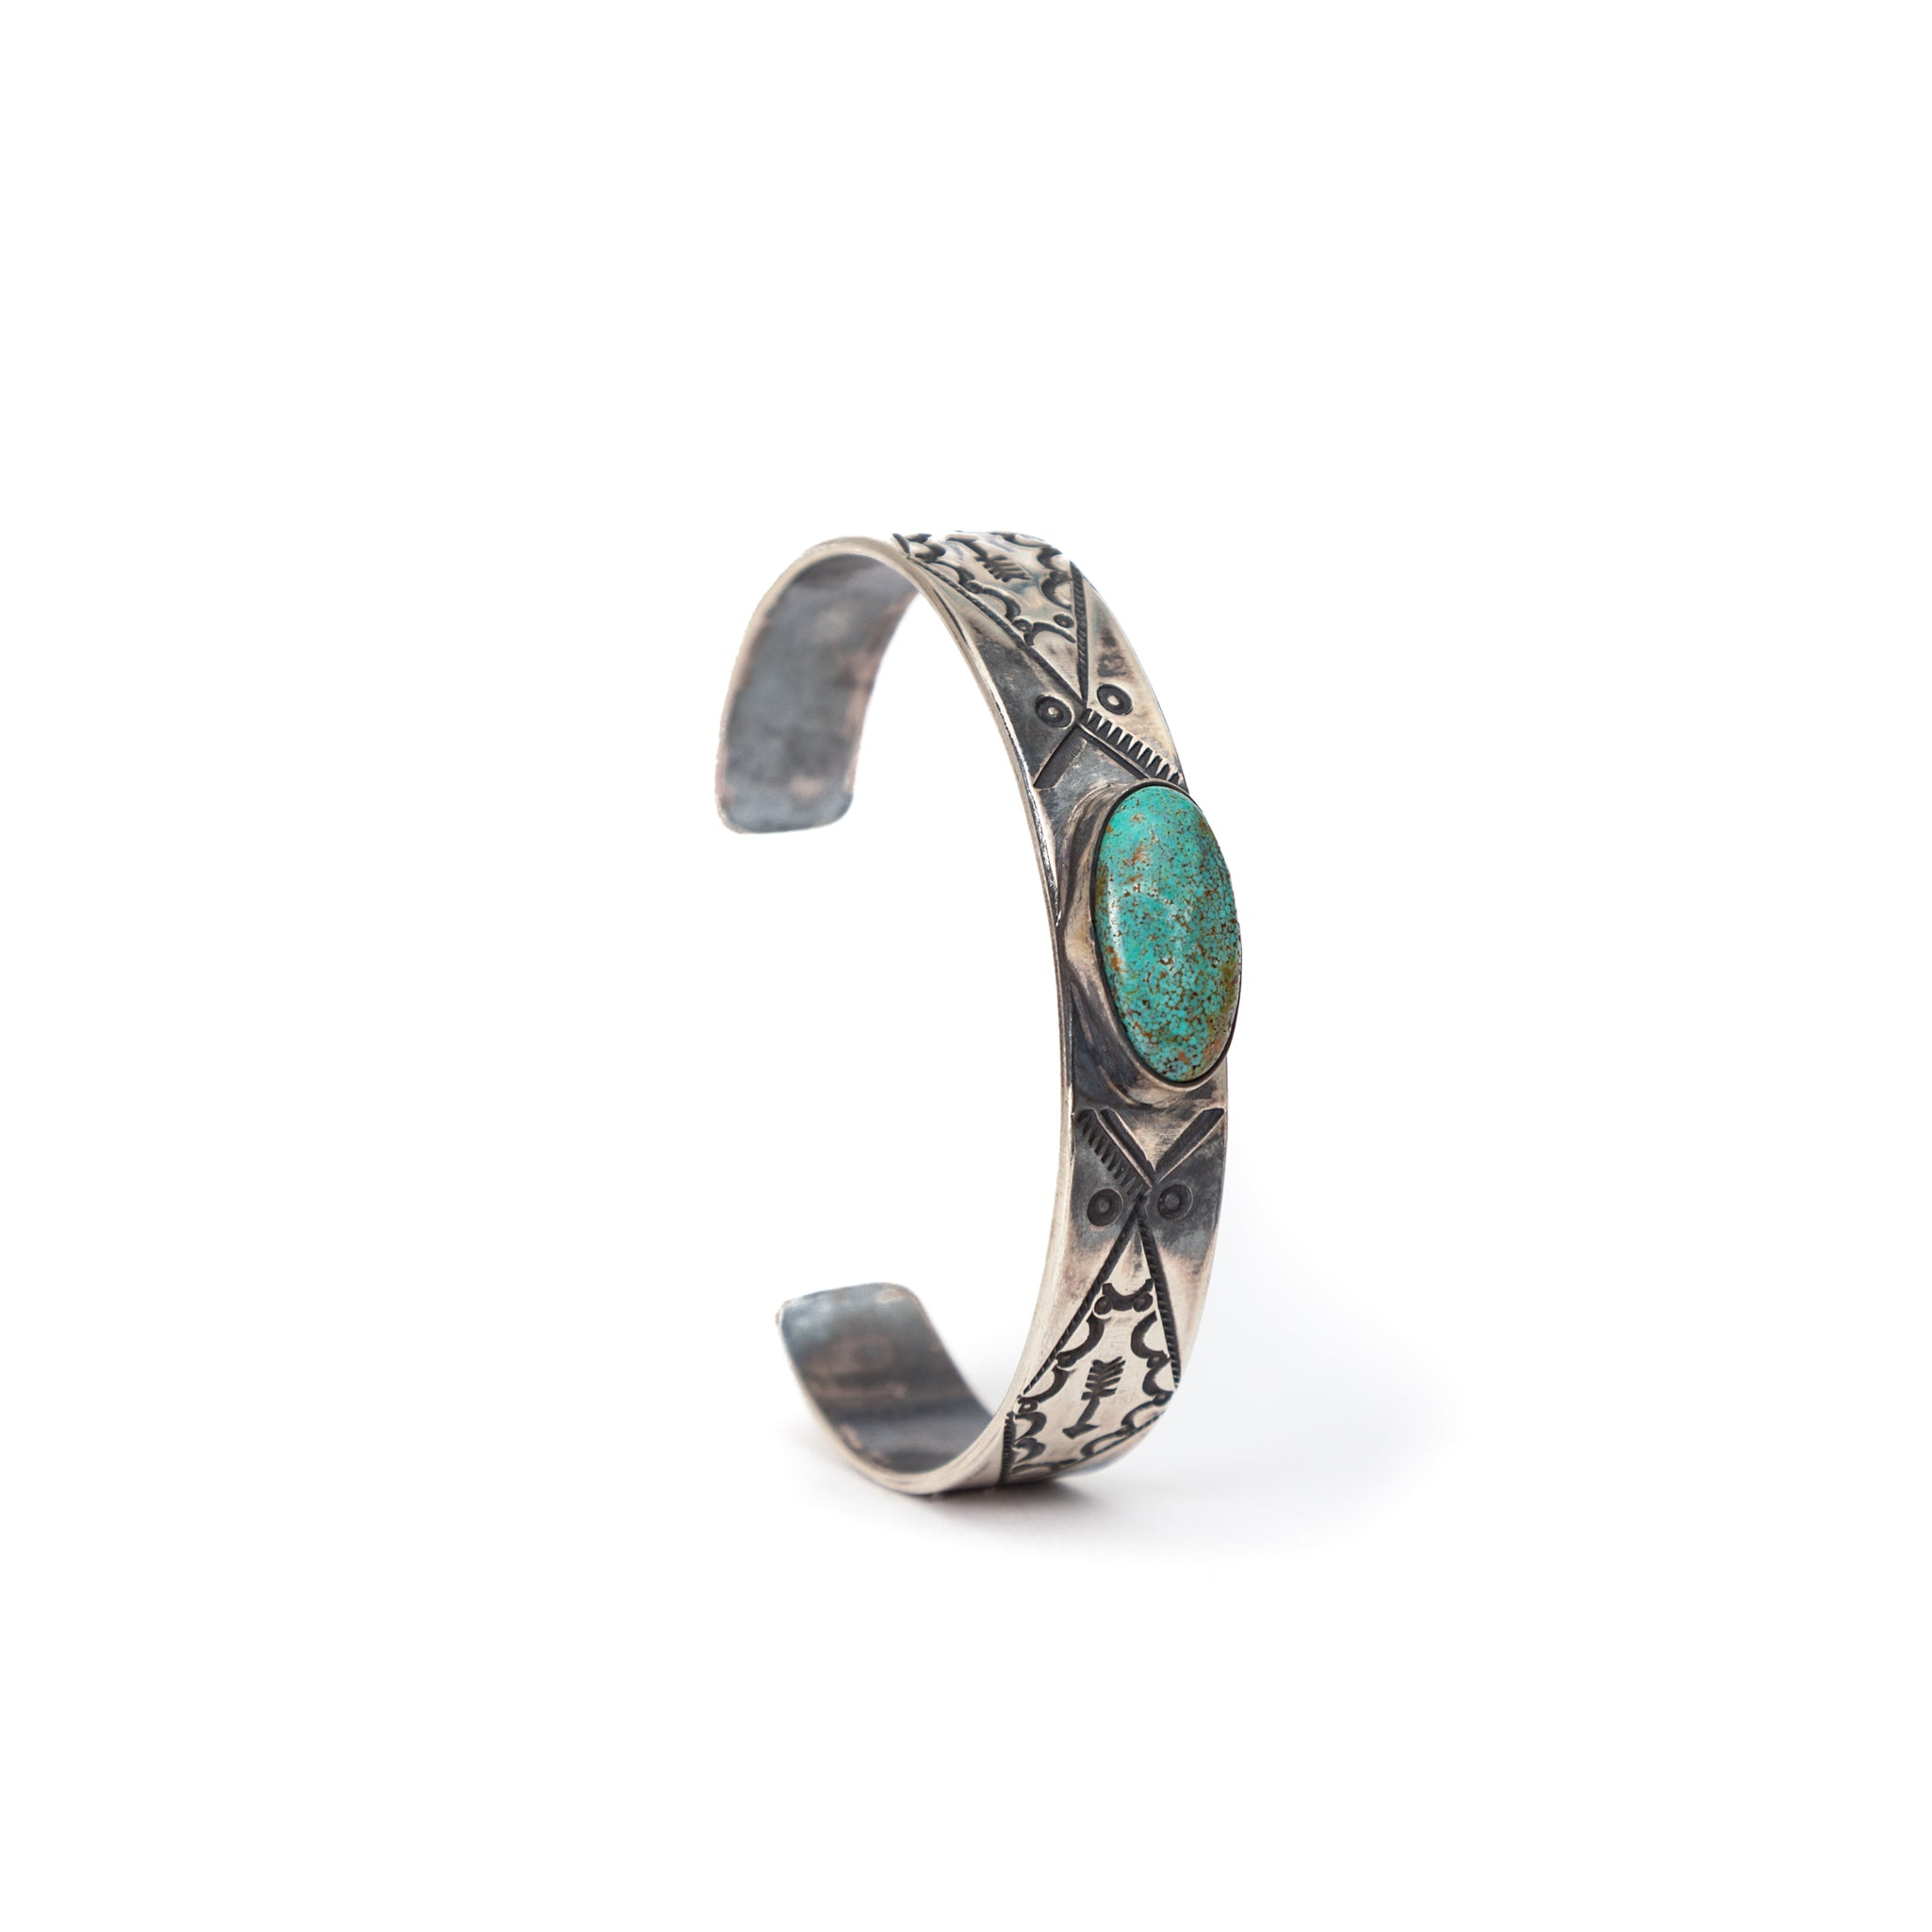 Silver Cuff & Turquoise Stone #3